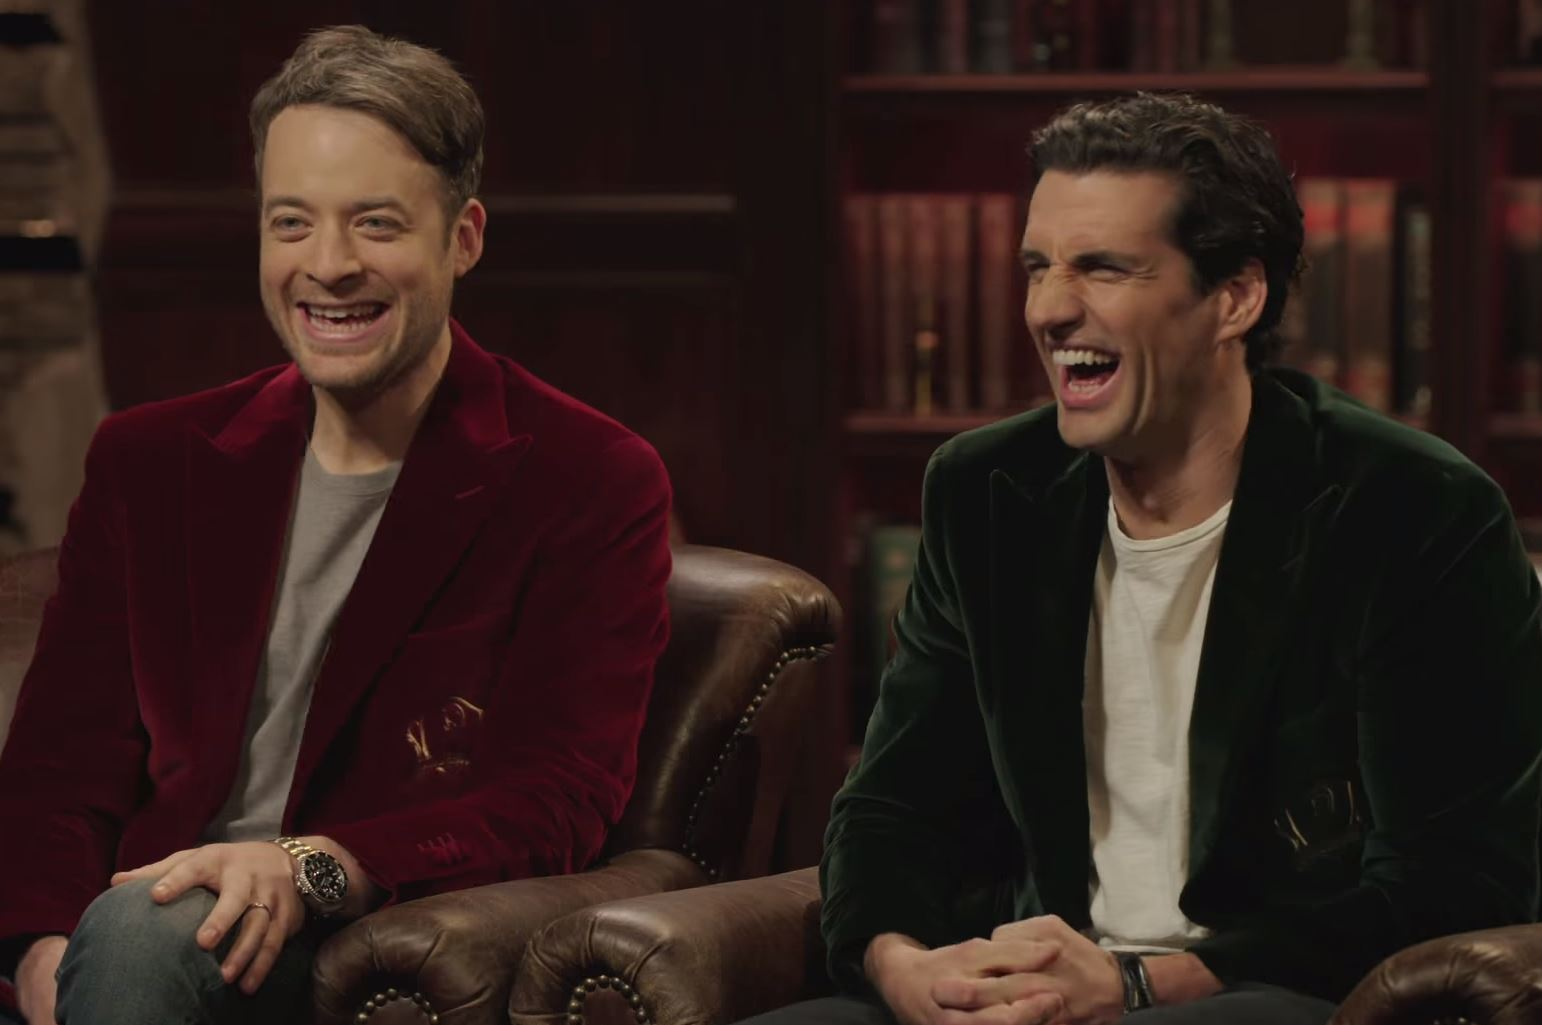 Hamish & Andy's 'True Story' Show To Be Adapted By Major US Network